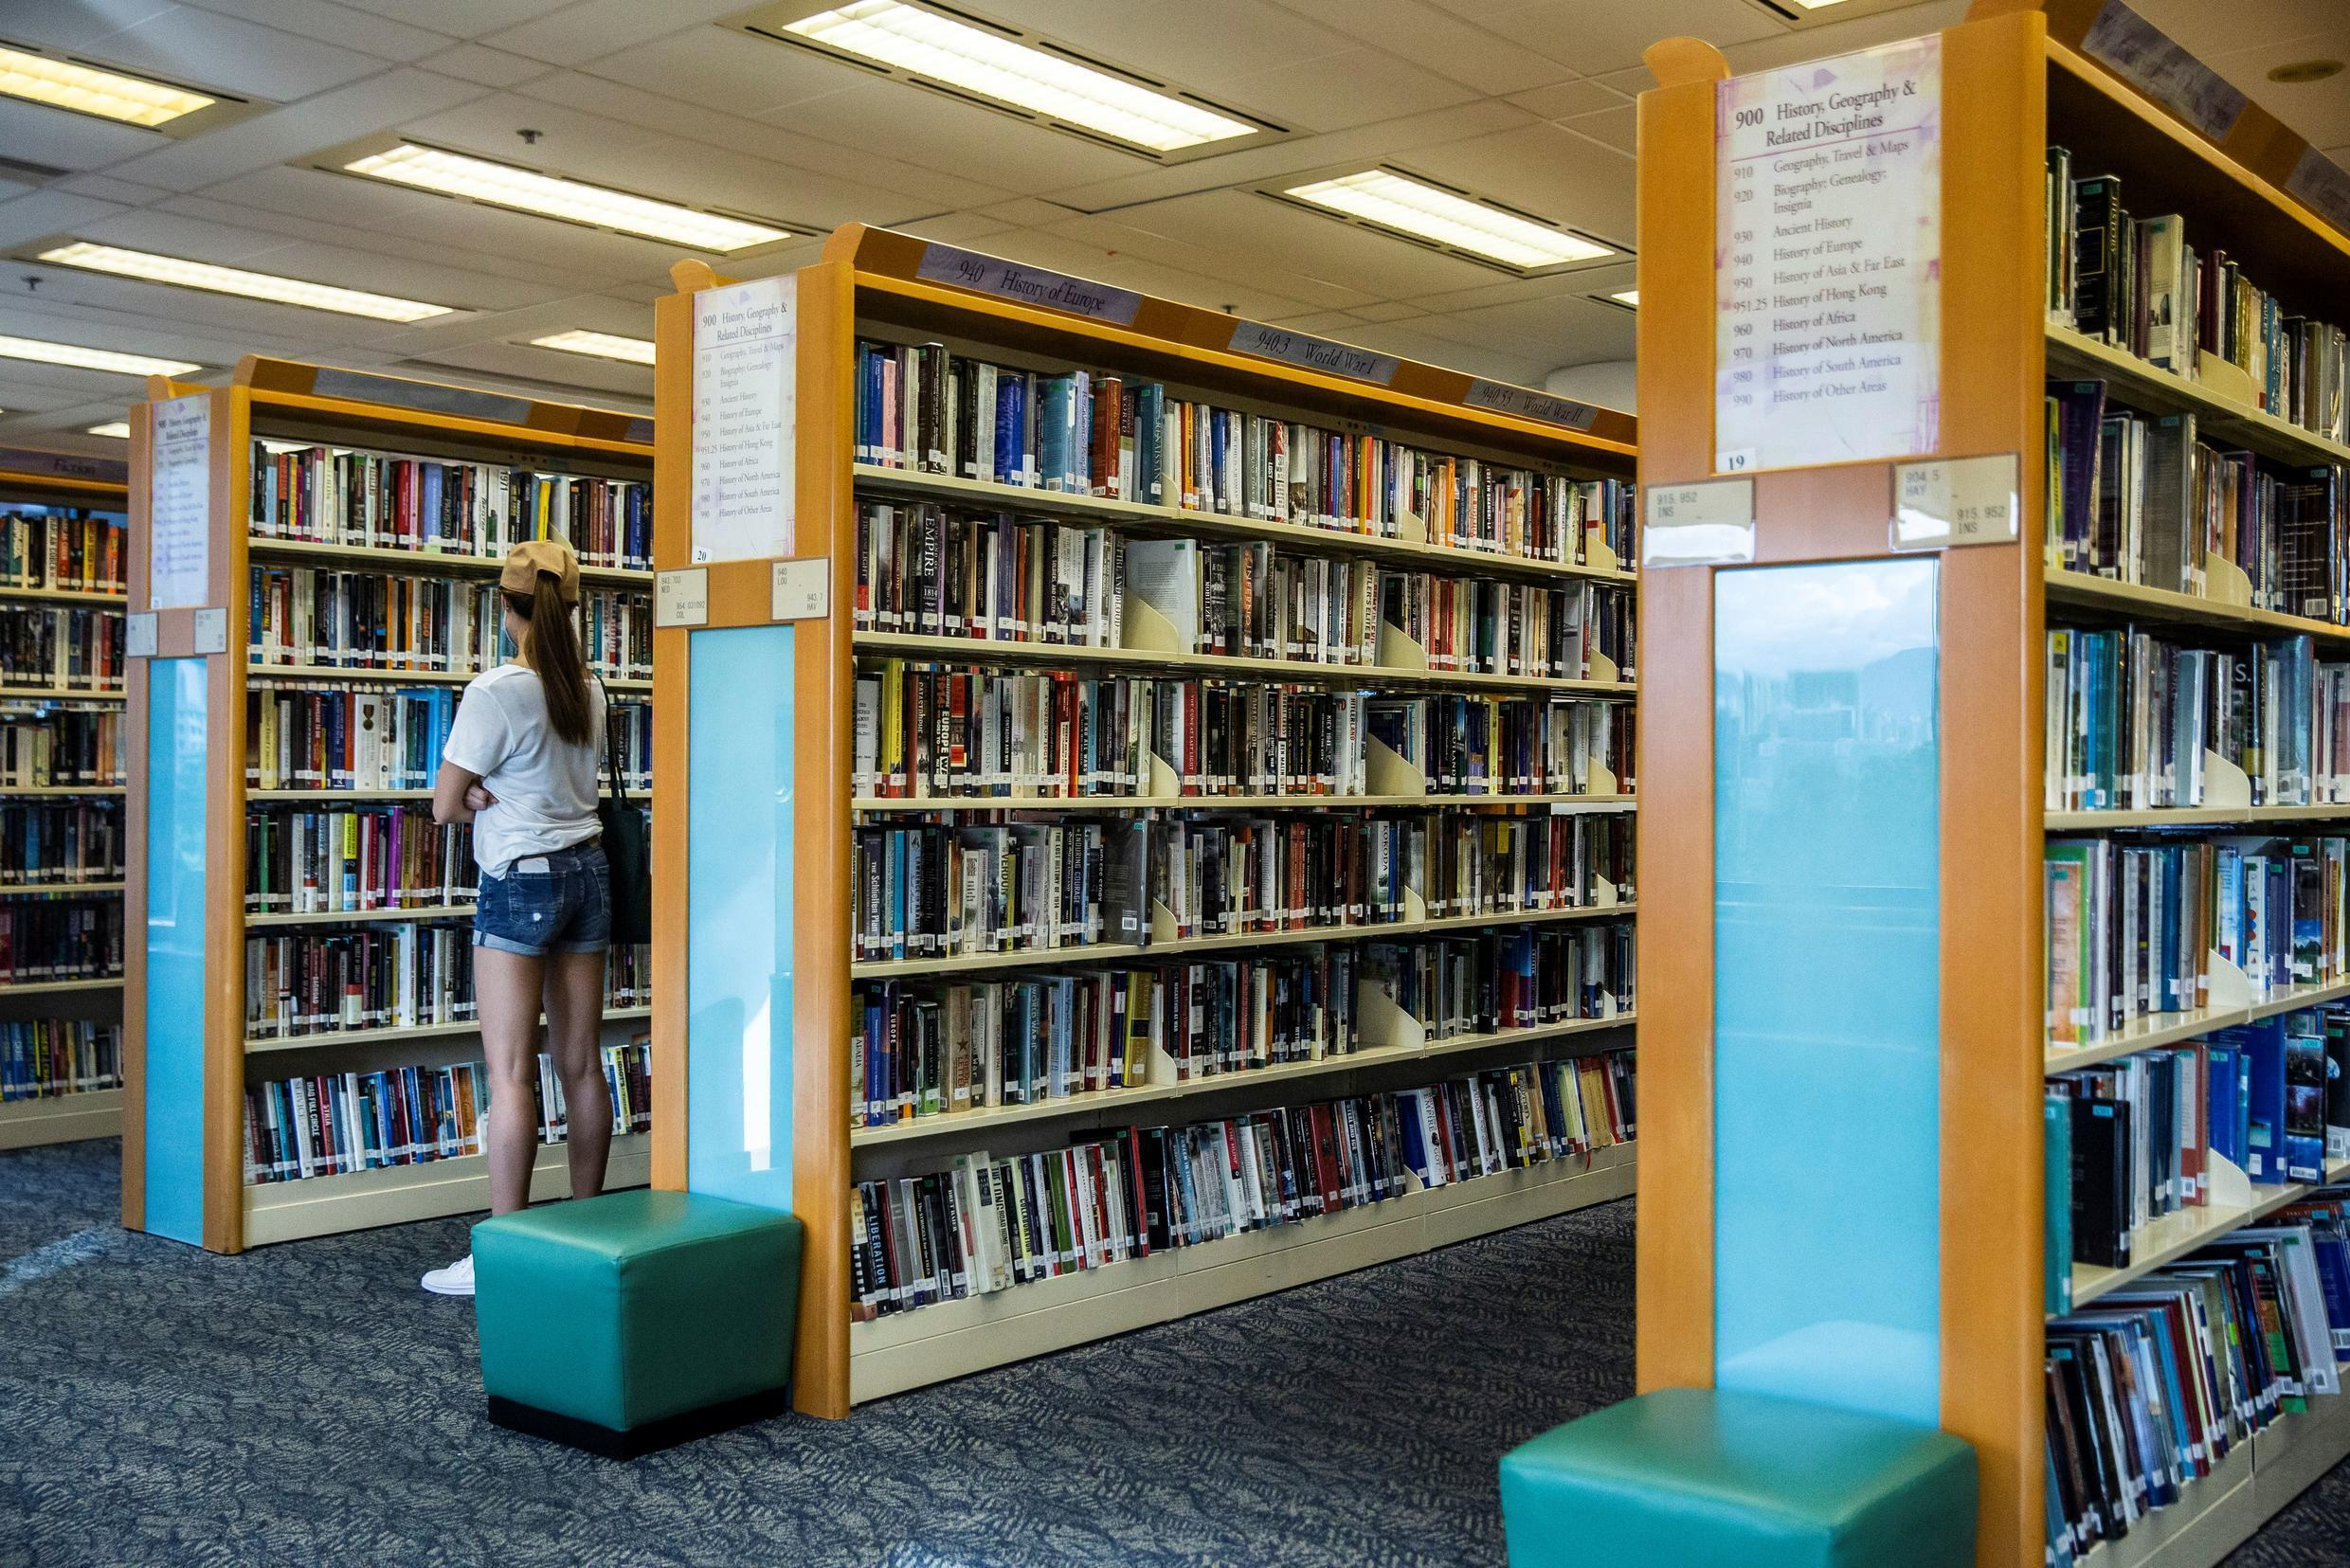 A woman looks at books in a public library in Hong Kong, China on July 4, 2020.